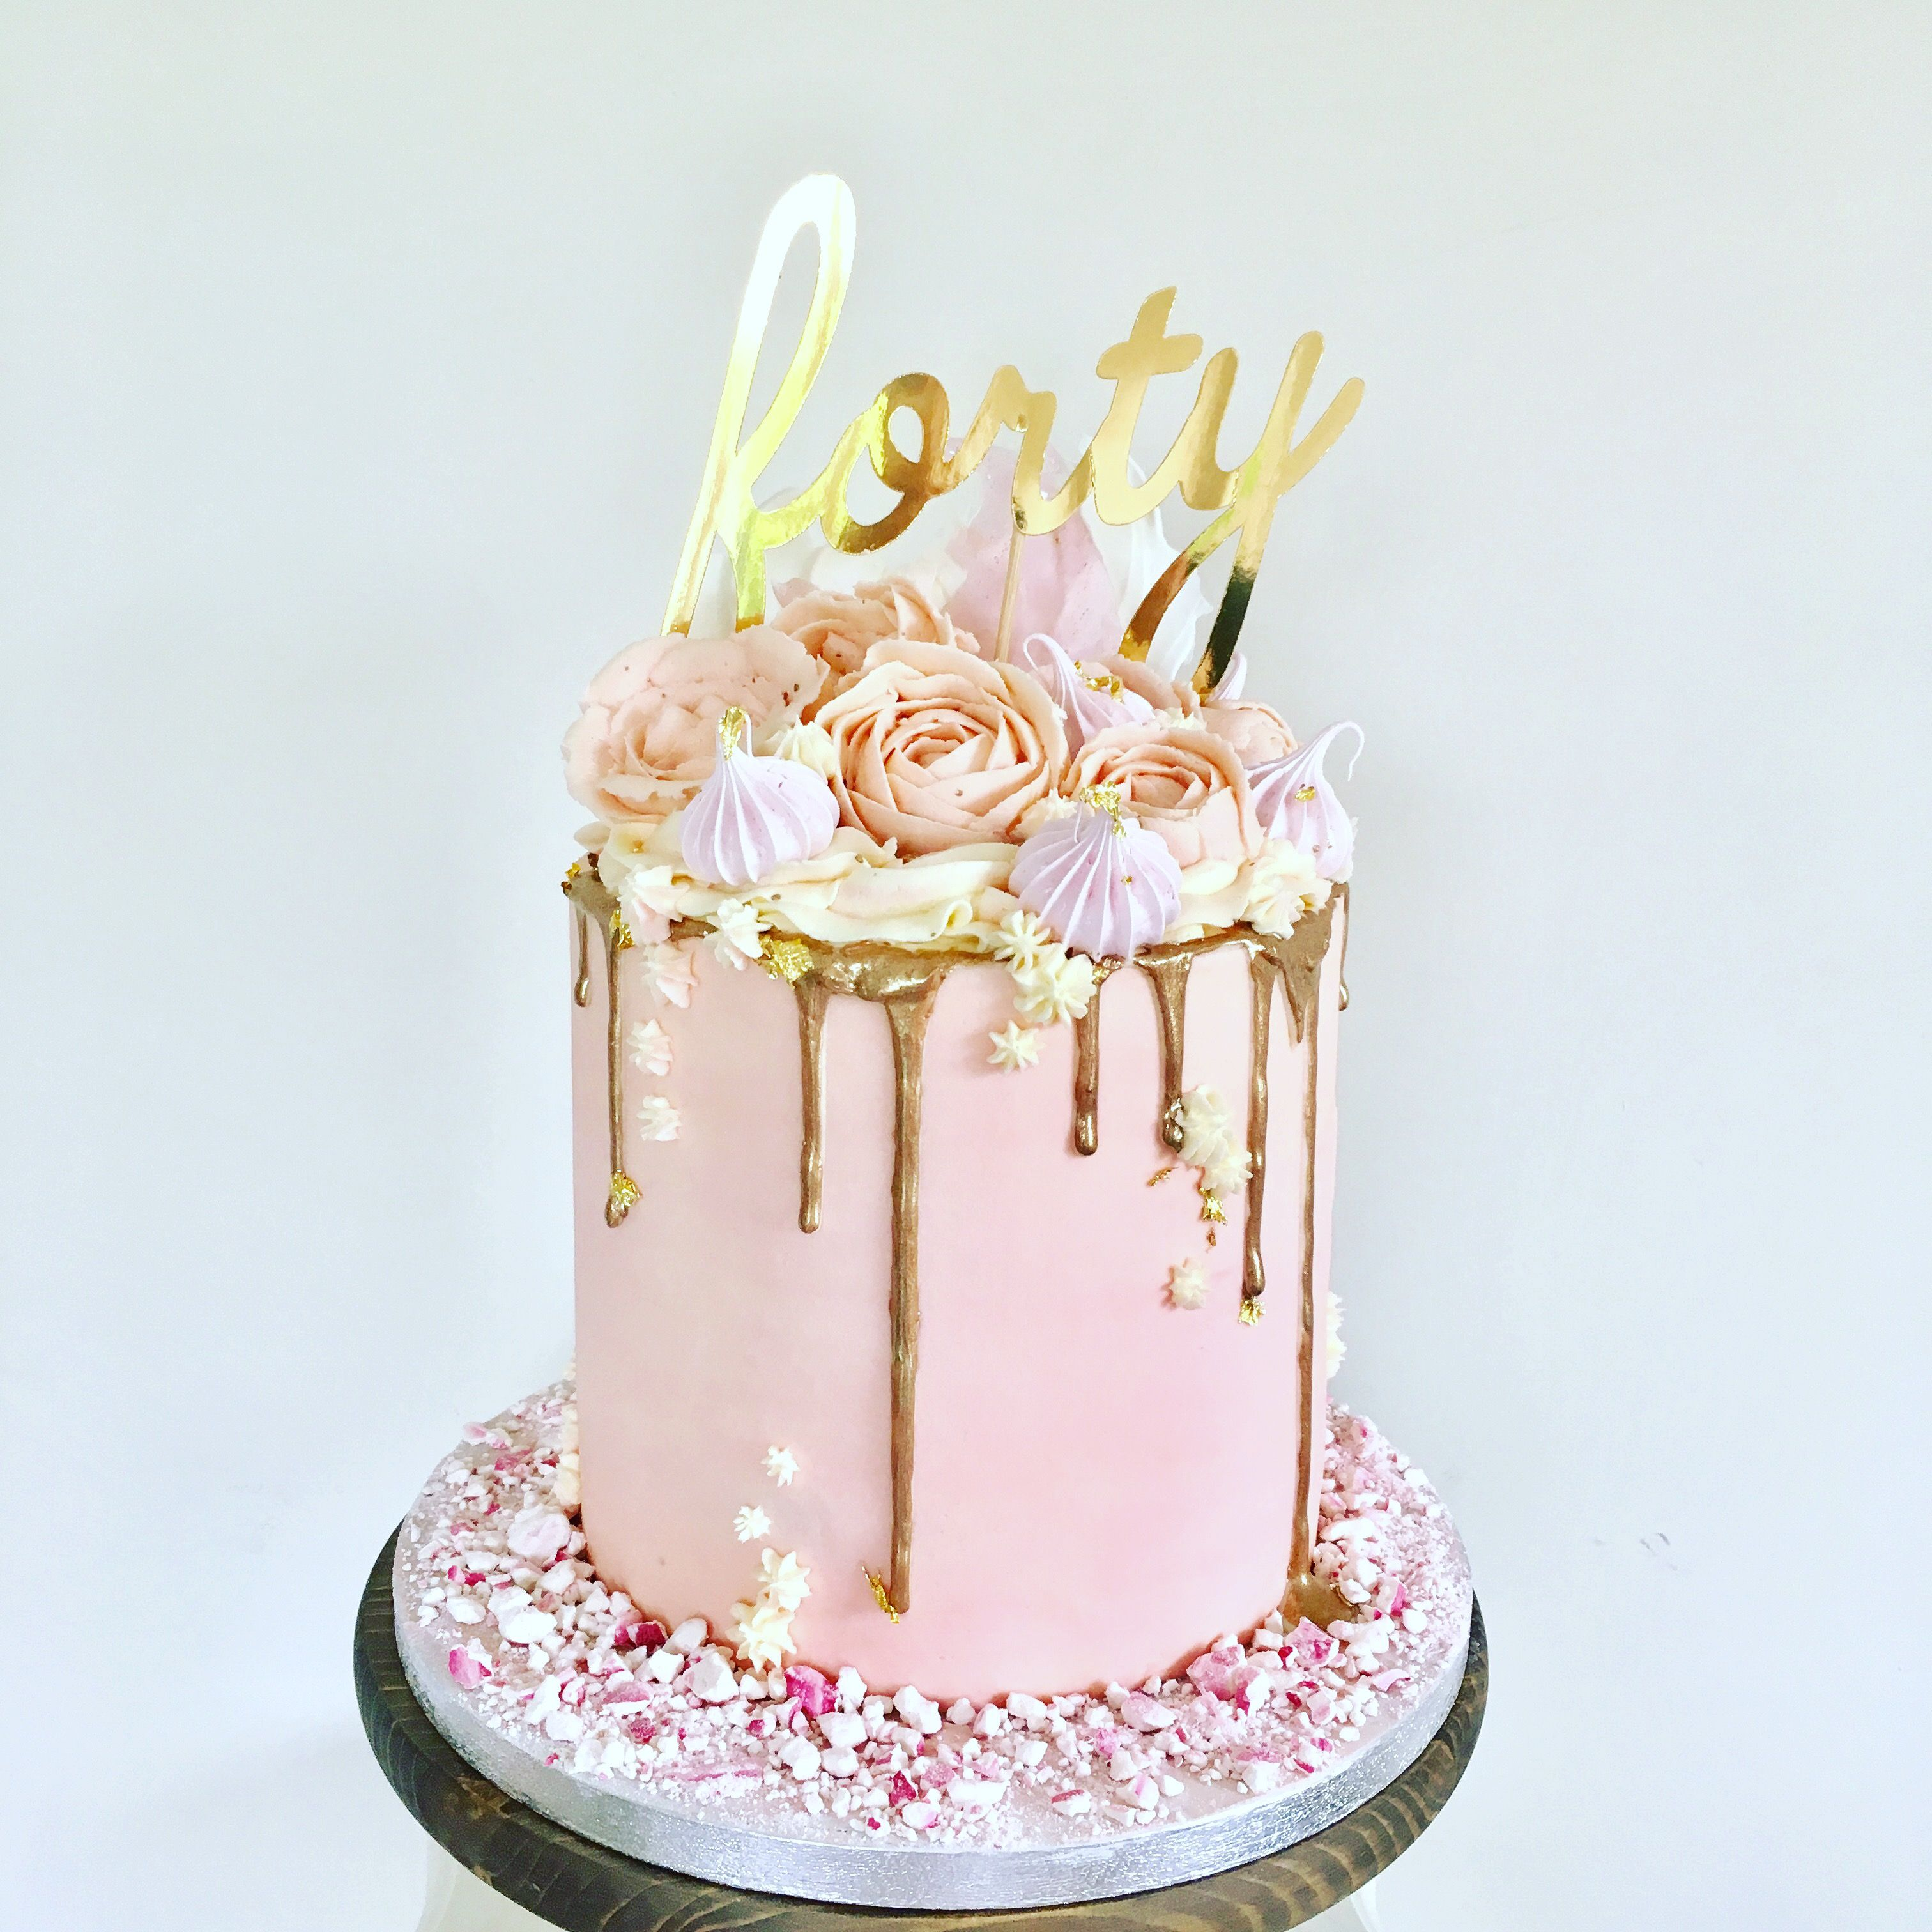 Pink Buttercream Cake With Buttercream Flowers Including Roses And